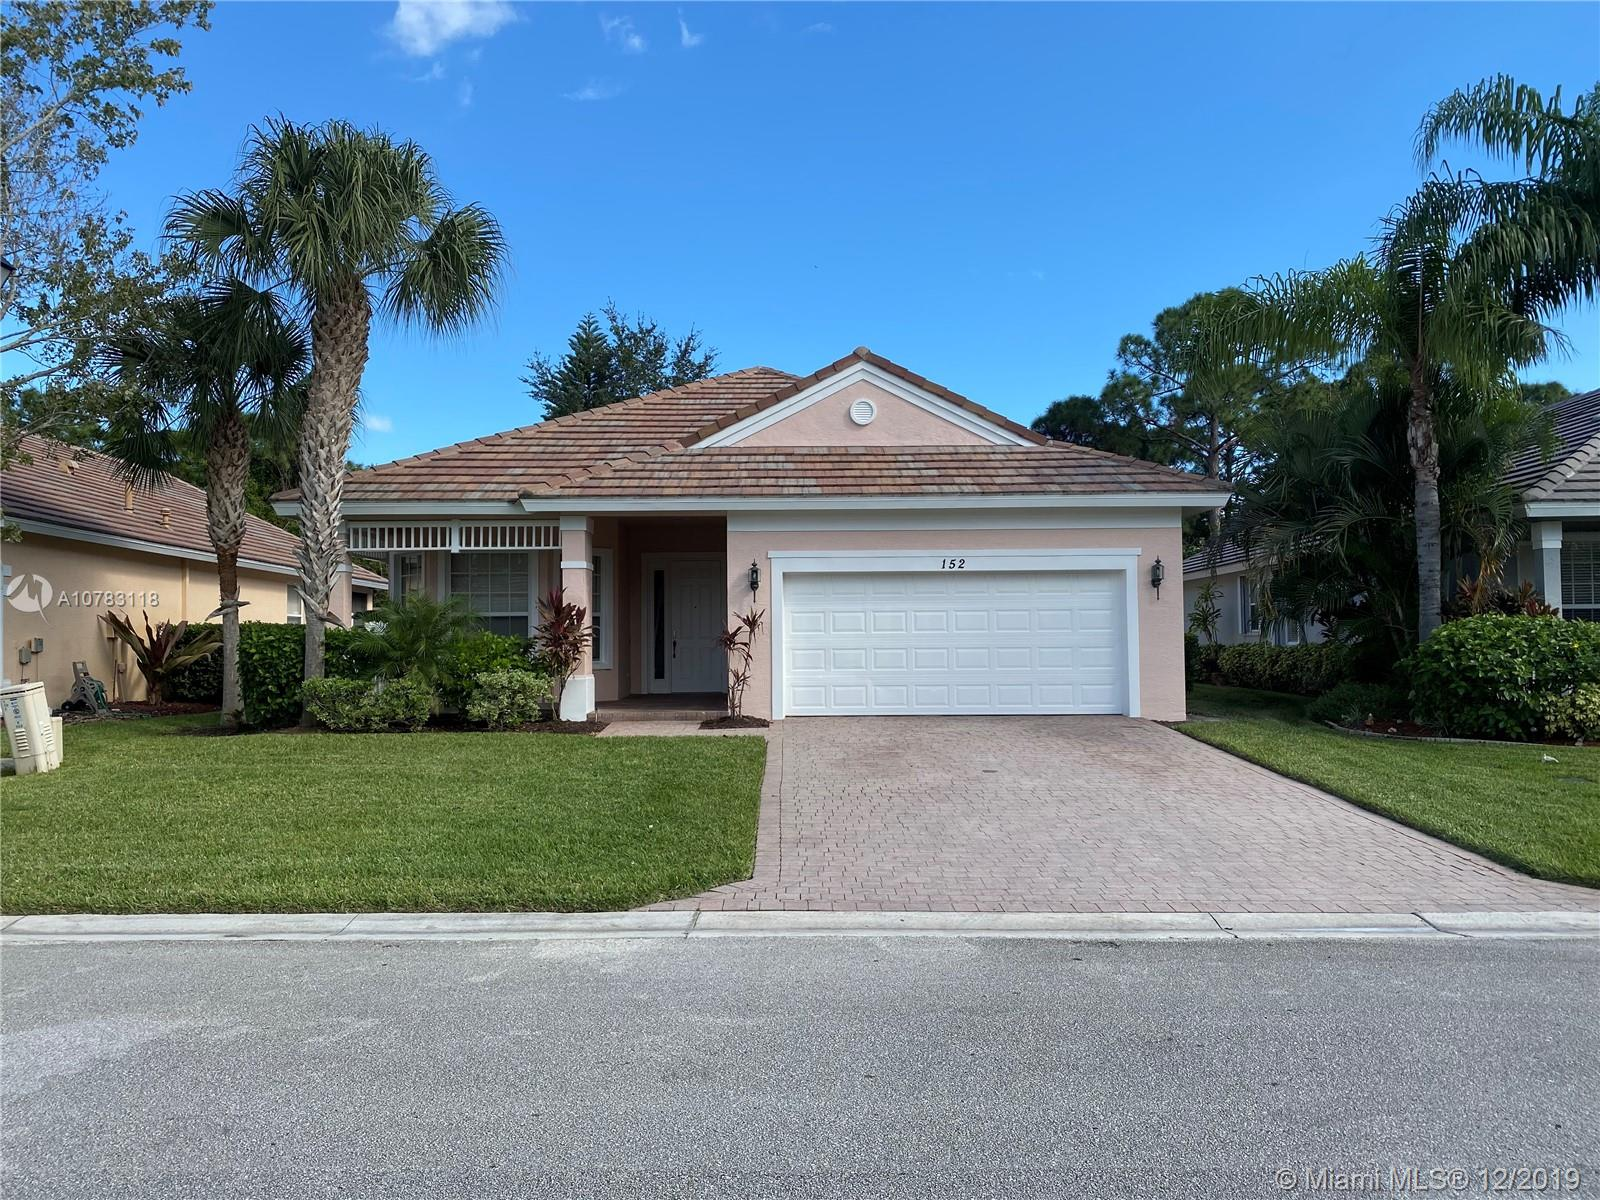 152 NW Pleasant Grove Way 152, Port St. Lucie, FL 34986